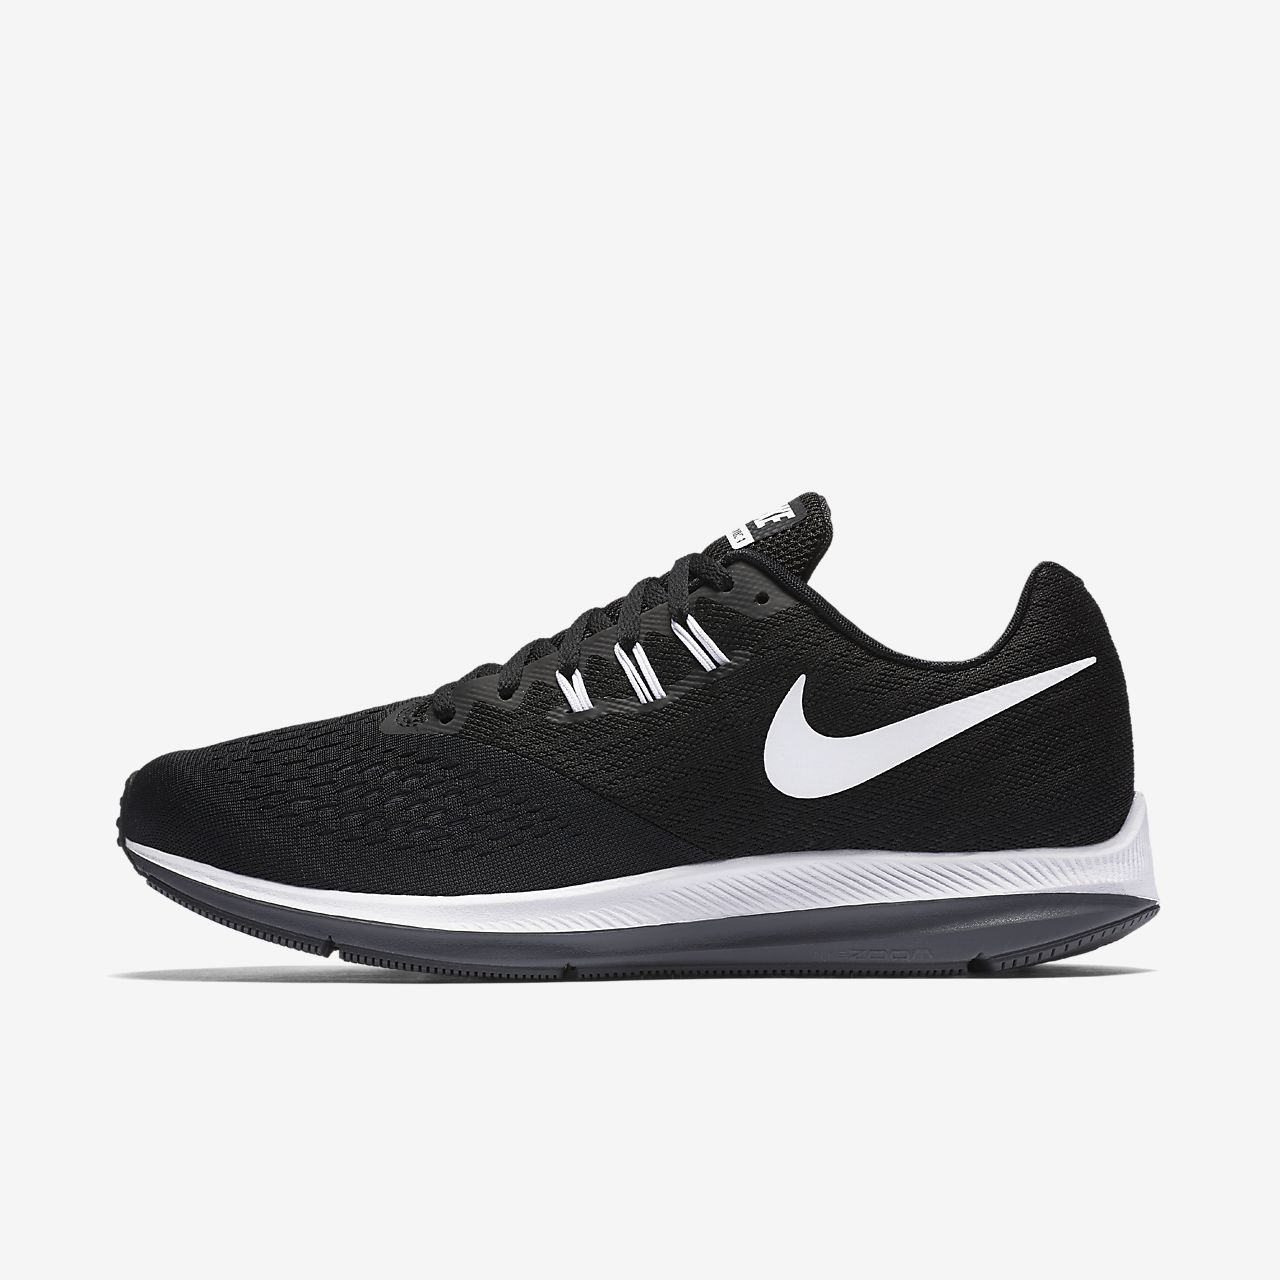 new concept bc04c f0d75 Nike Chaussures Zoom Winflo 3 bleu gris ybY2B